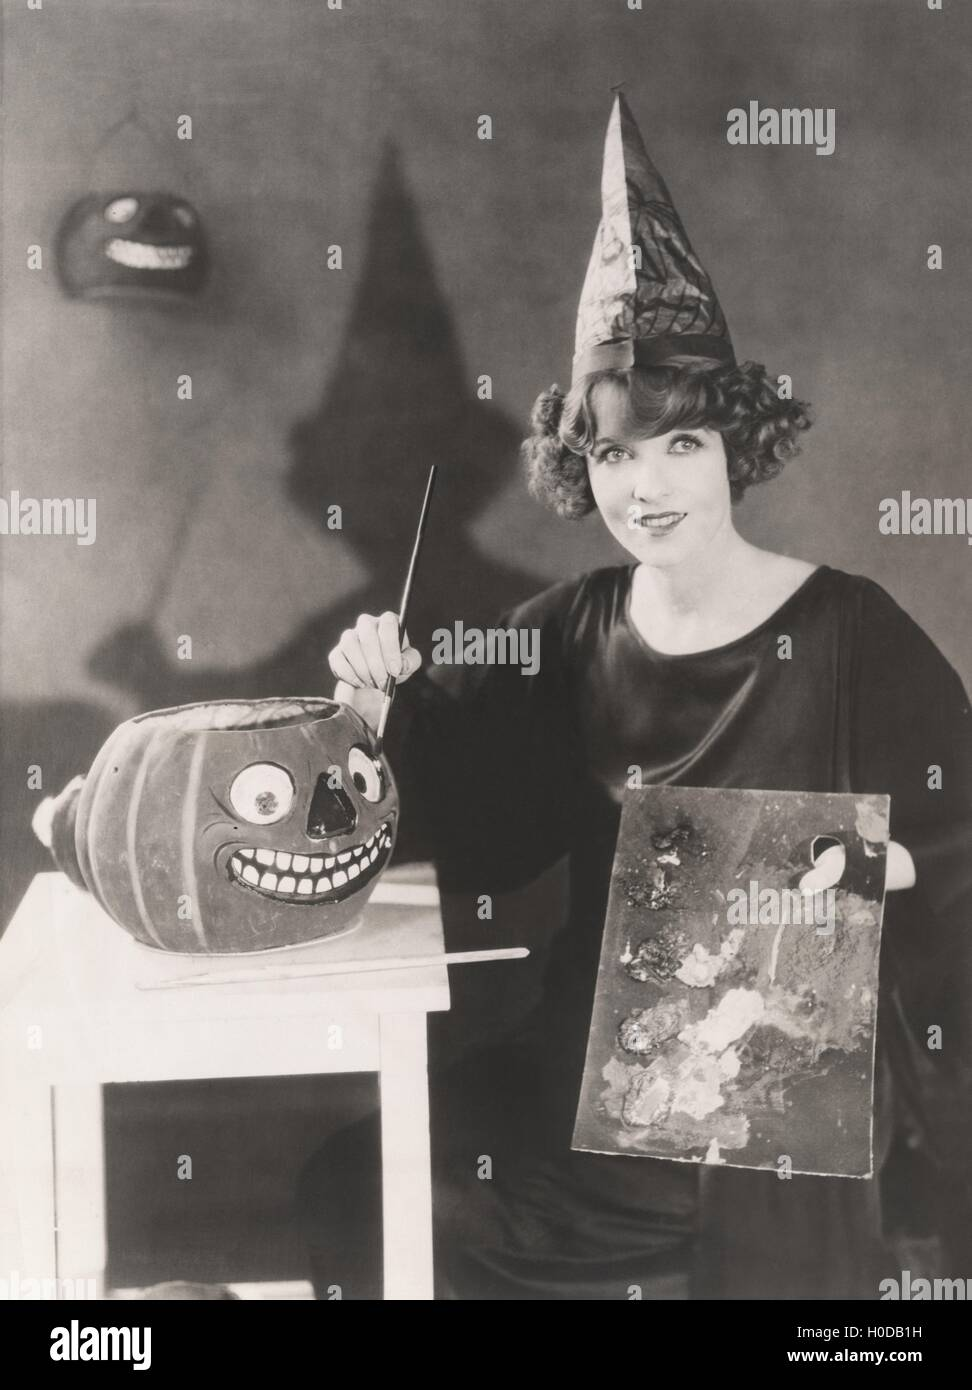 Woman in pointy hat painting a jack o'lantern - Stock Image